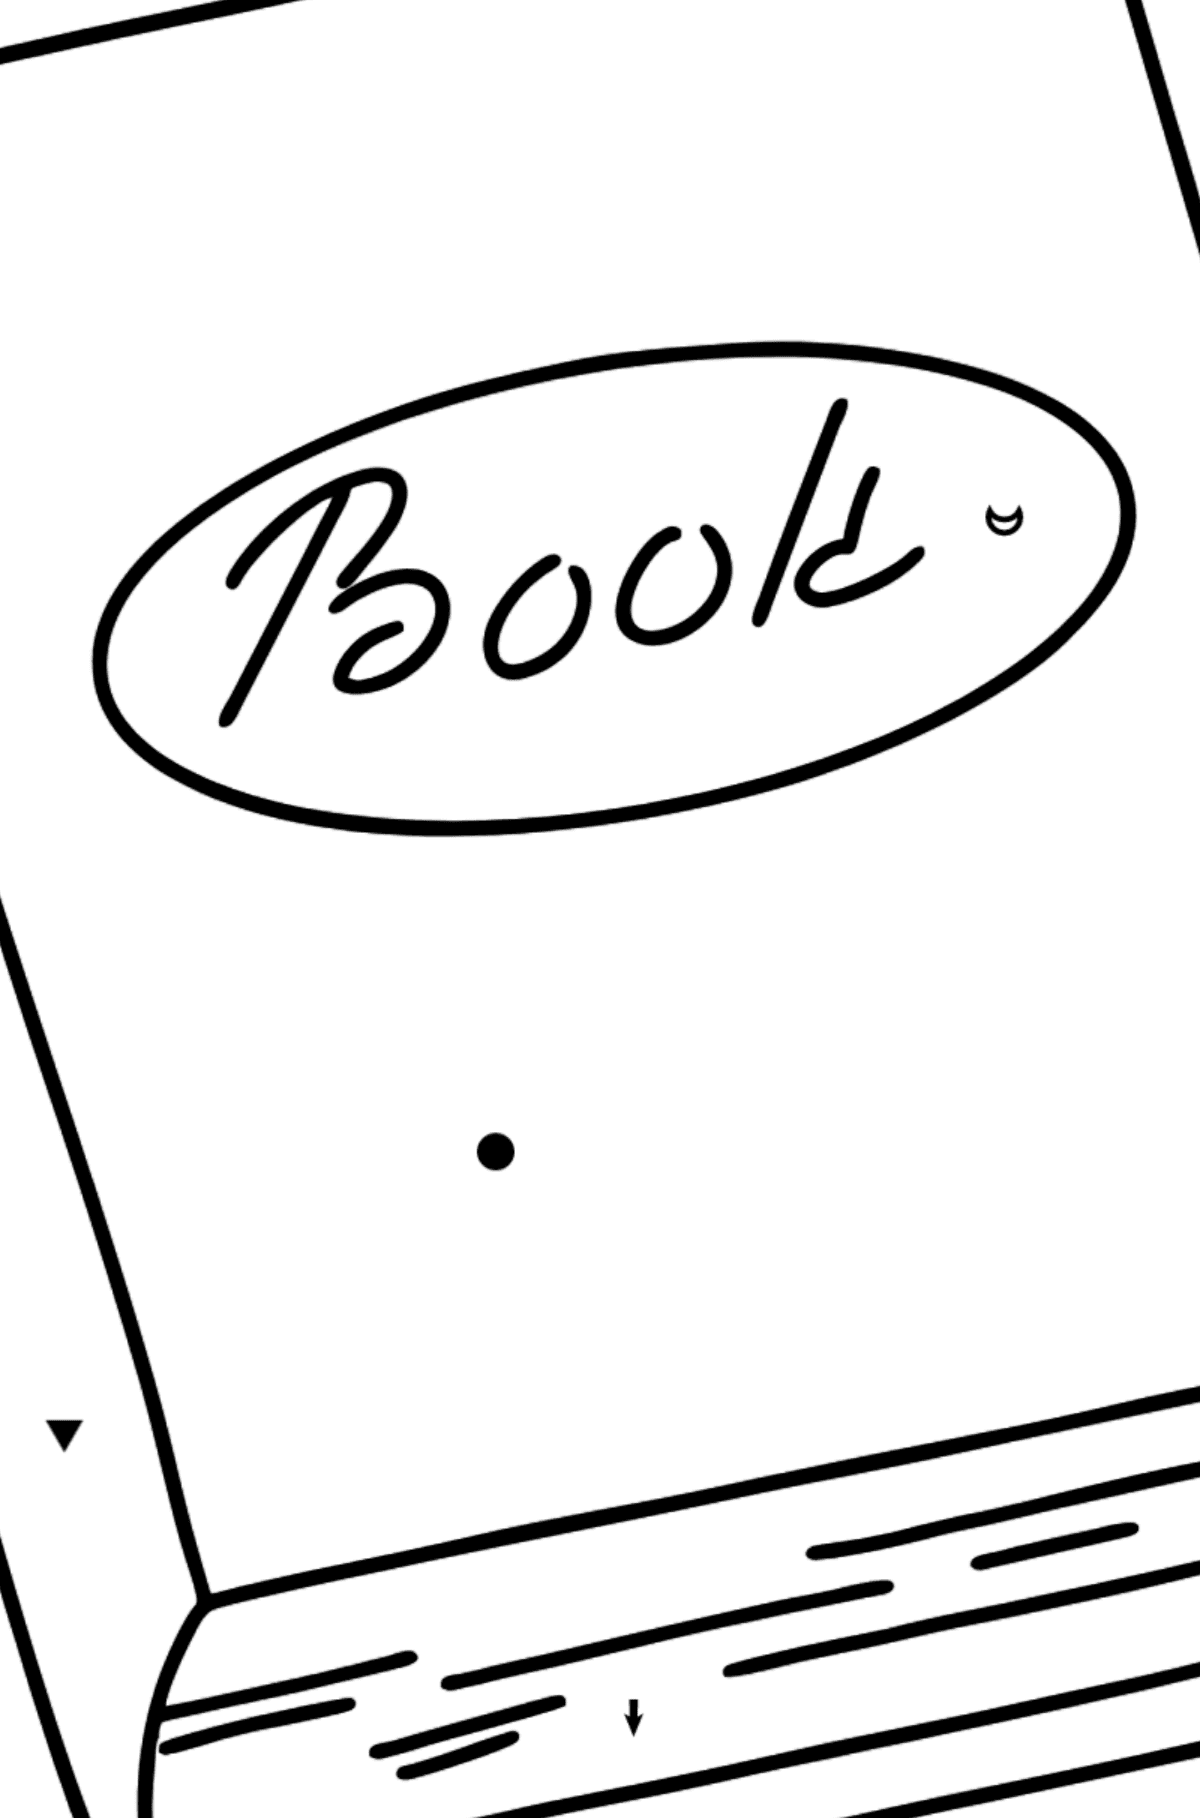 Book coloring page - Coloring by Symbols for Kids